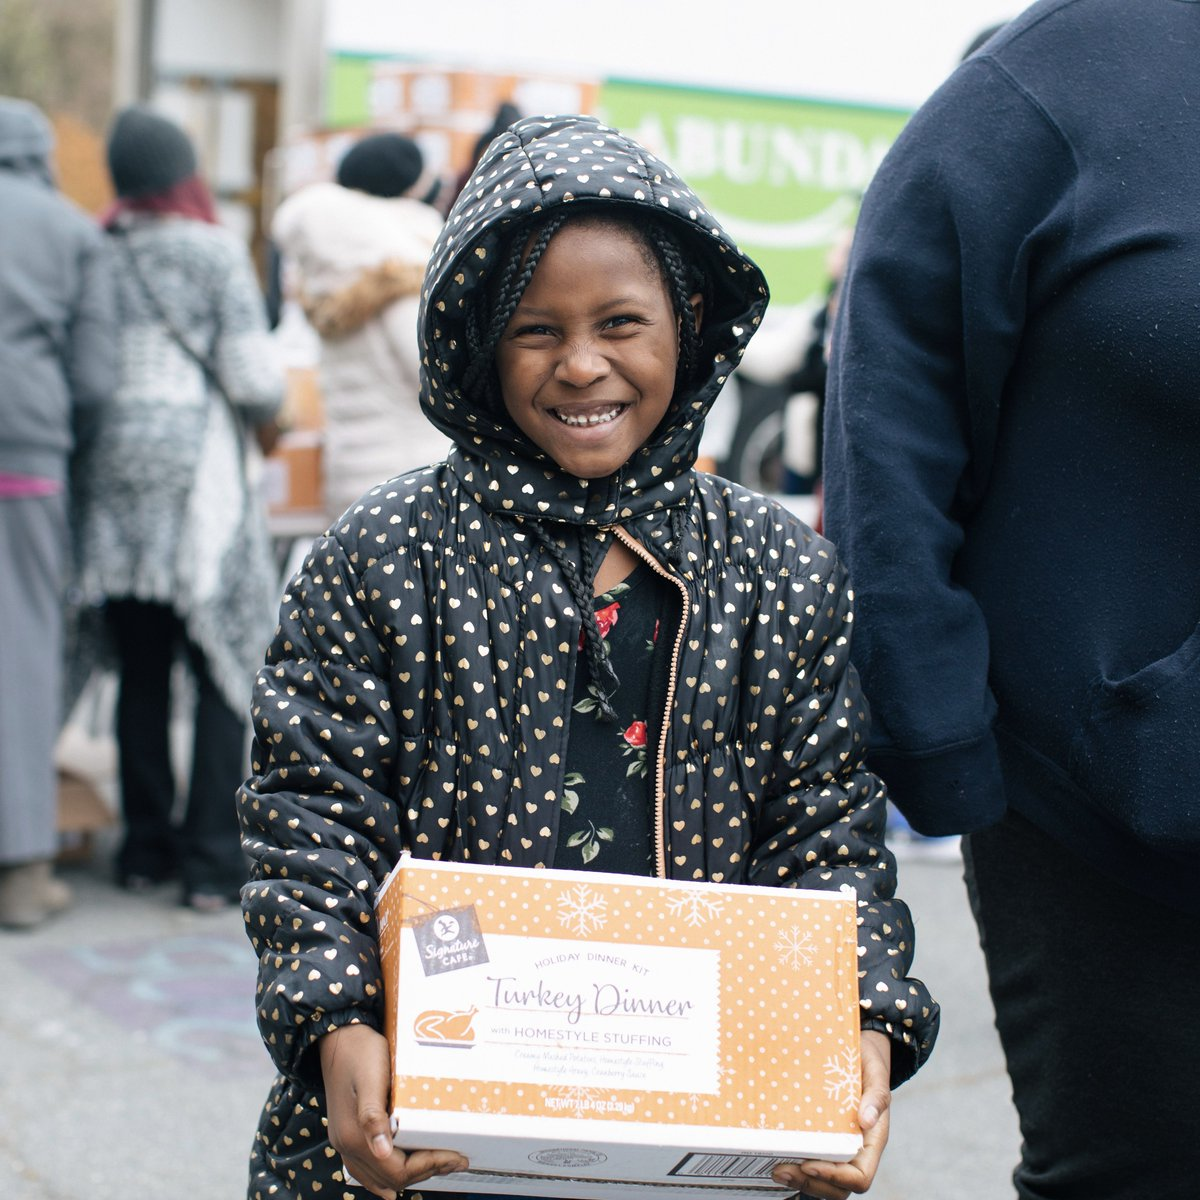 """We're just really grateful. And because of this food, I can buy my daughter new shoes and a coat this winter."" -Taleka, mom of 7-year-old Alayaha  Help families faced with tough choices this winter:"